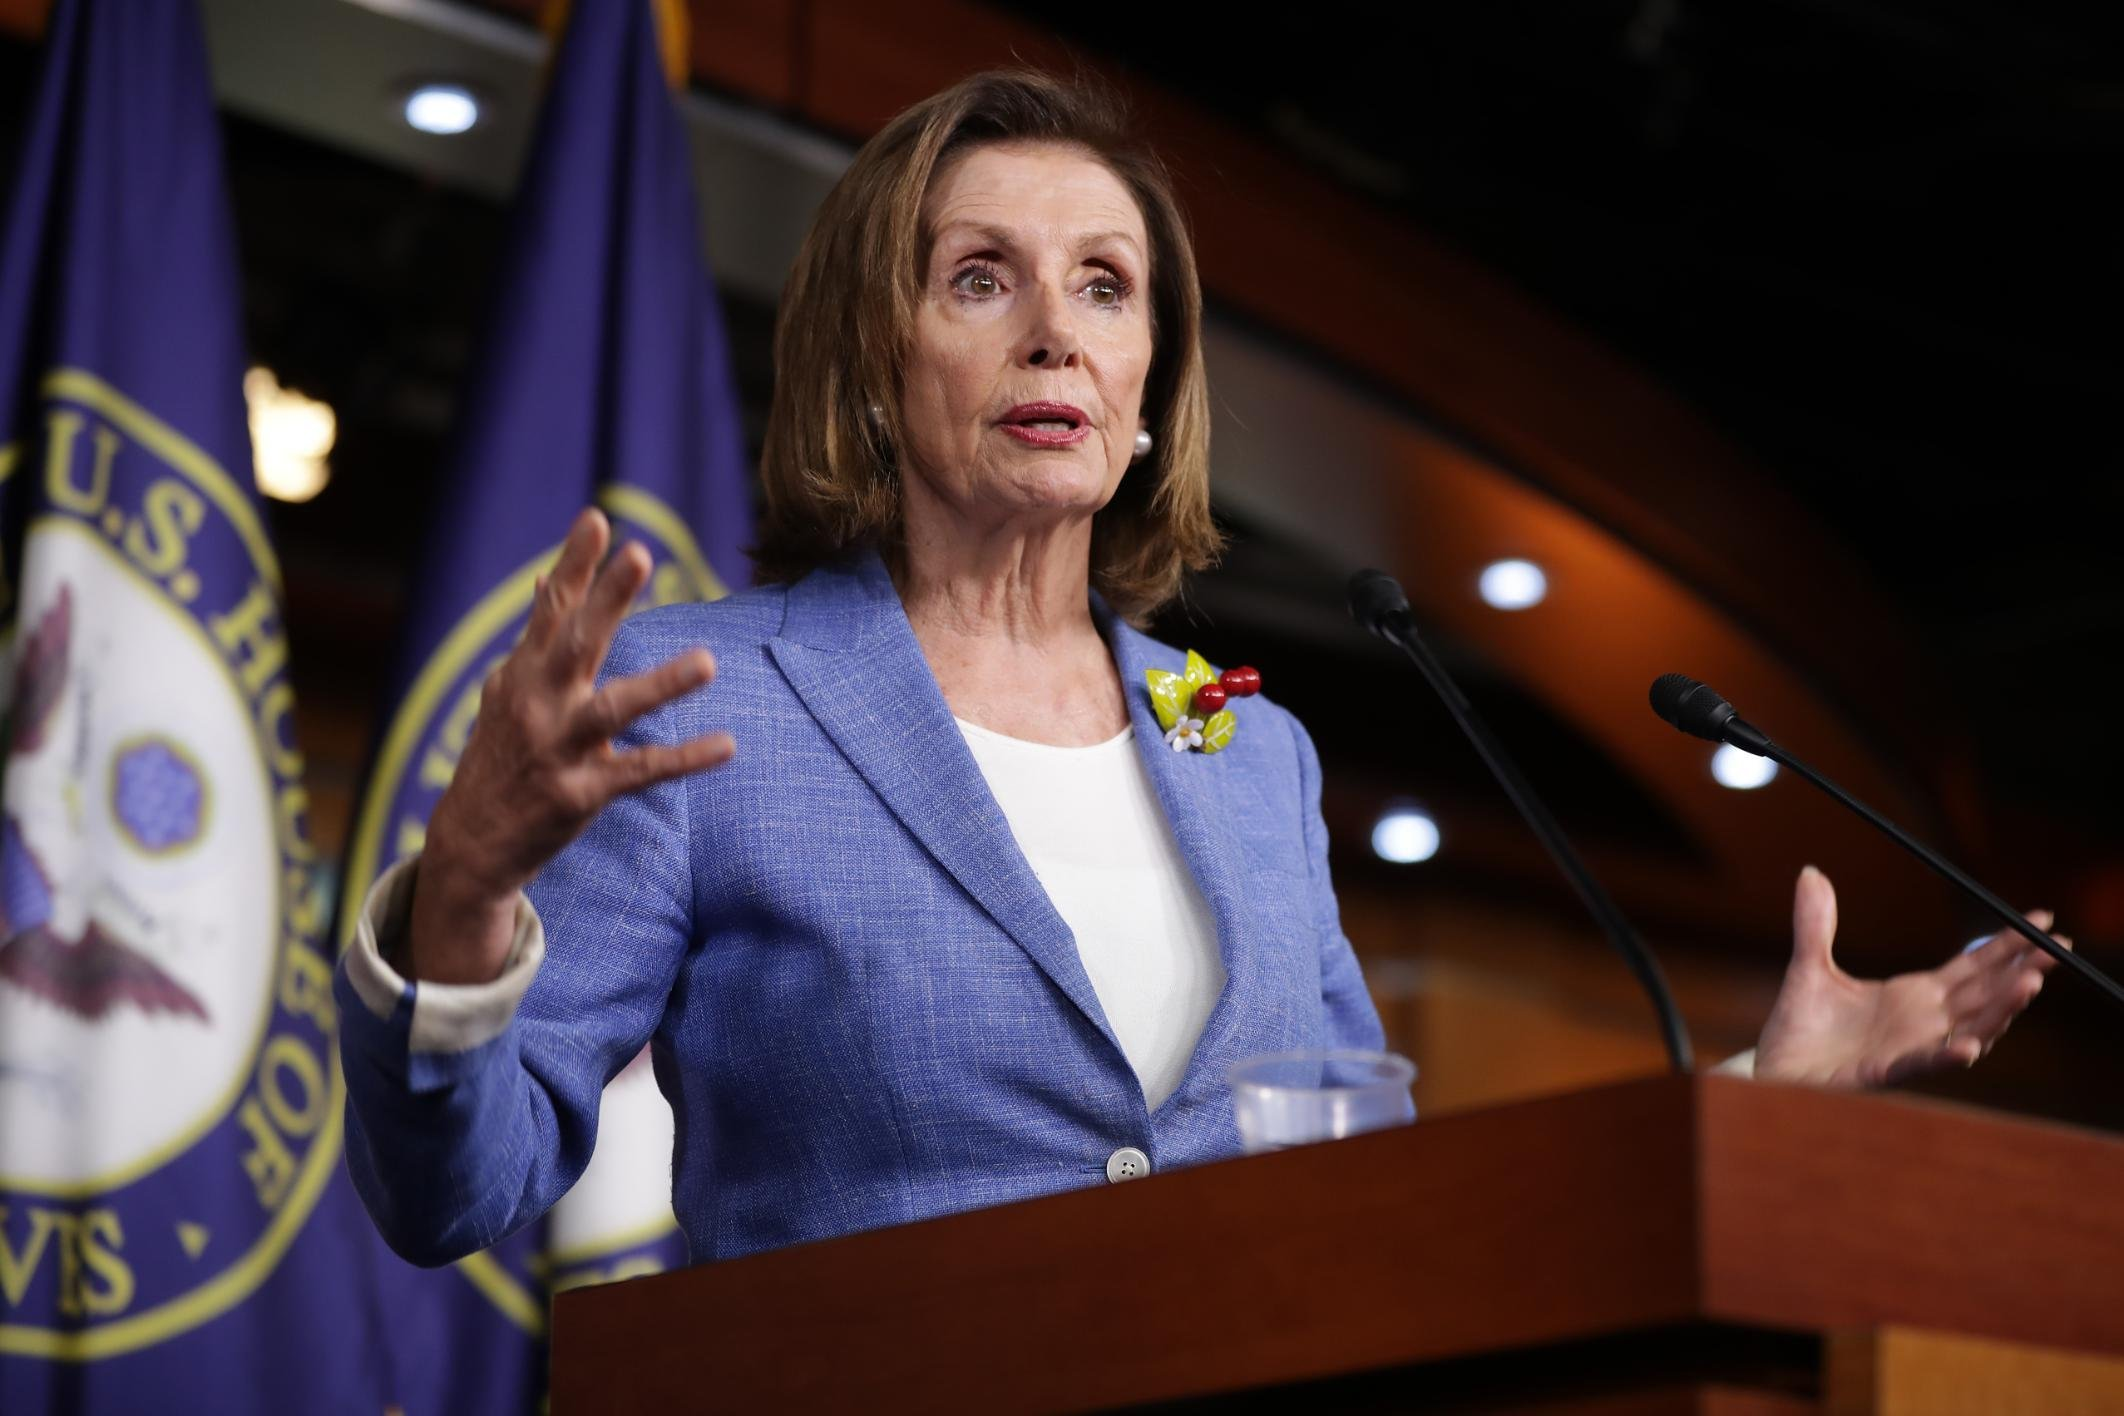 Pelosi leads congressional delegation to Jordan to discuss Middle East and Syria